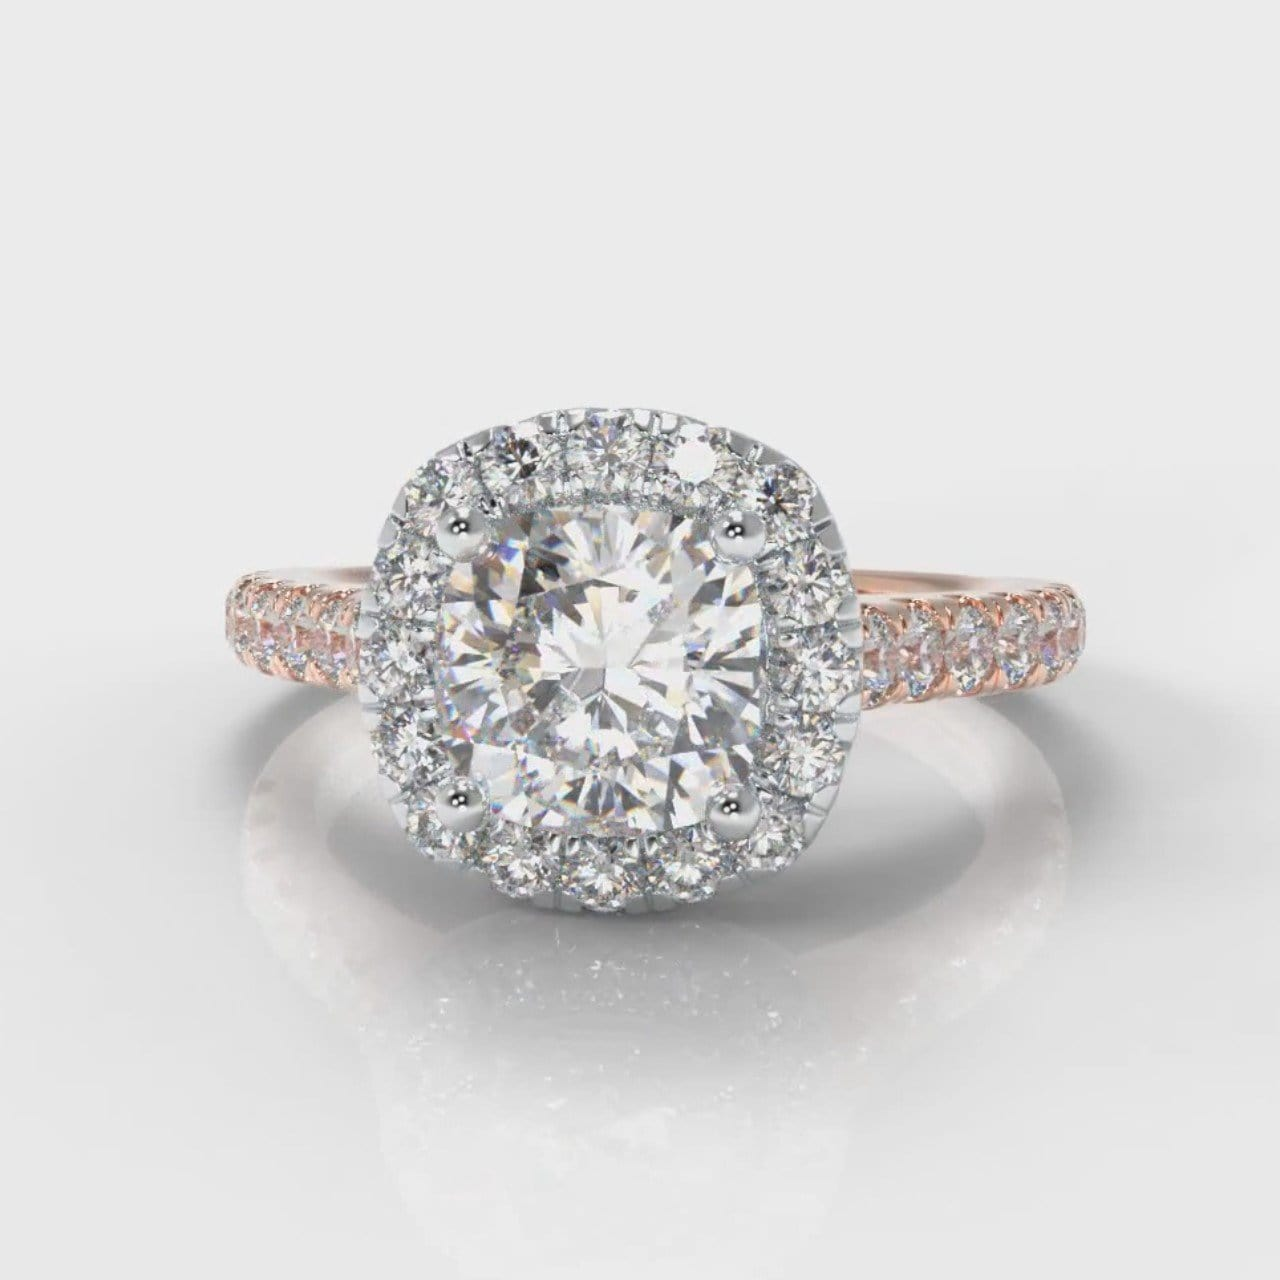 Micropavé Cushion Cut Diamond Halo Engagement Ring - Two Tone Rose Gold